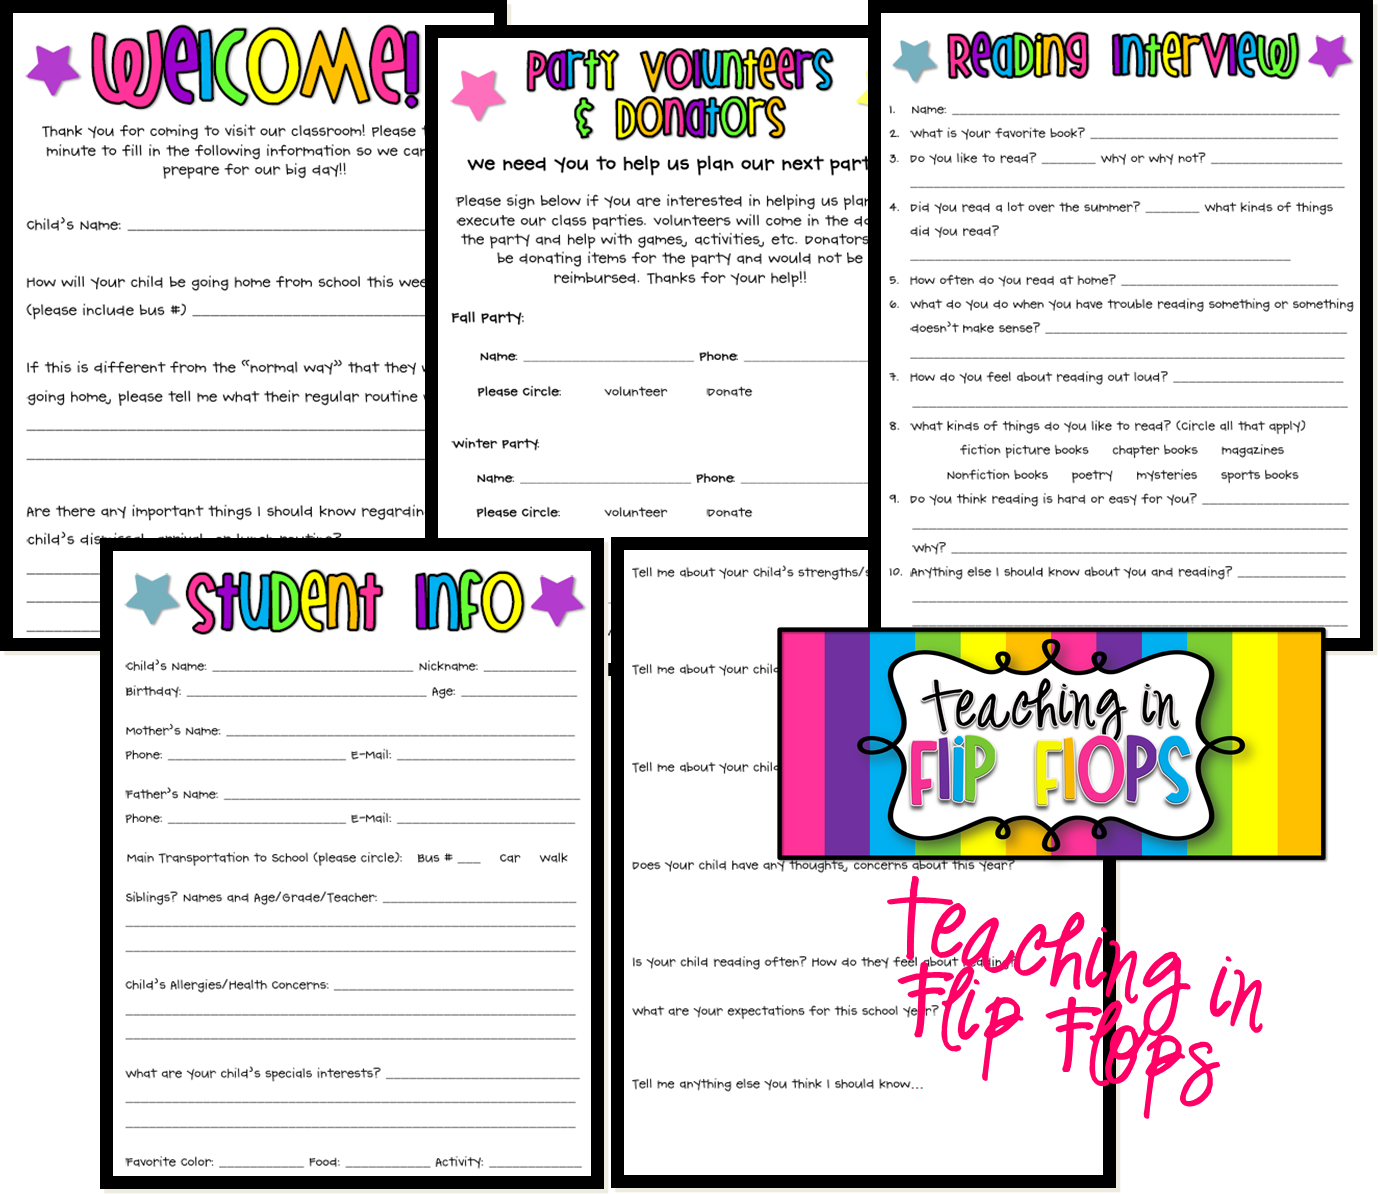 Great forms for Back to School. Thanks - Teaching in Flip Flops